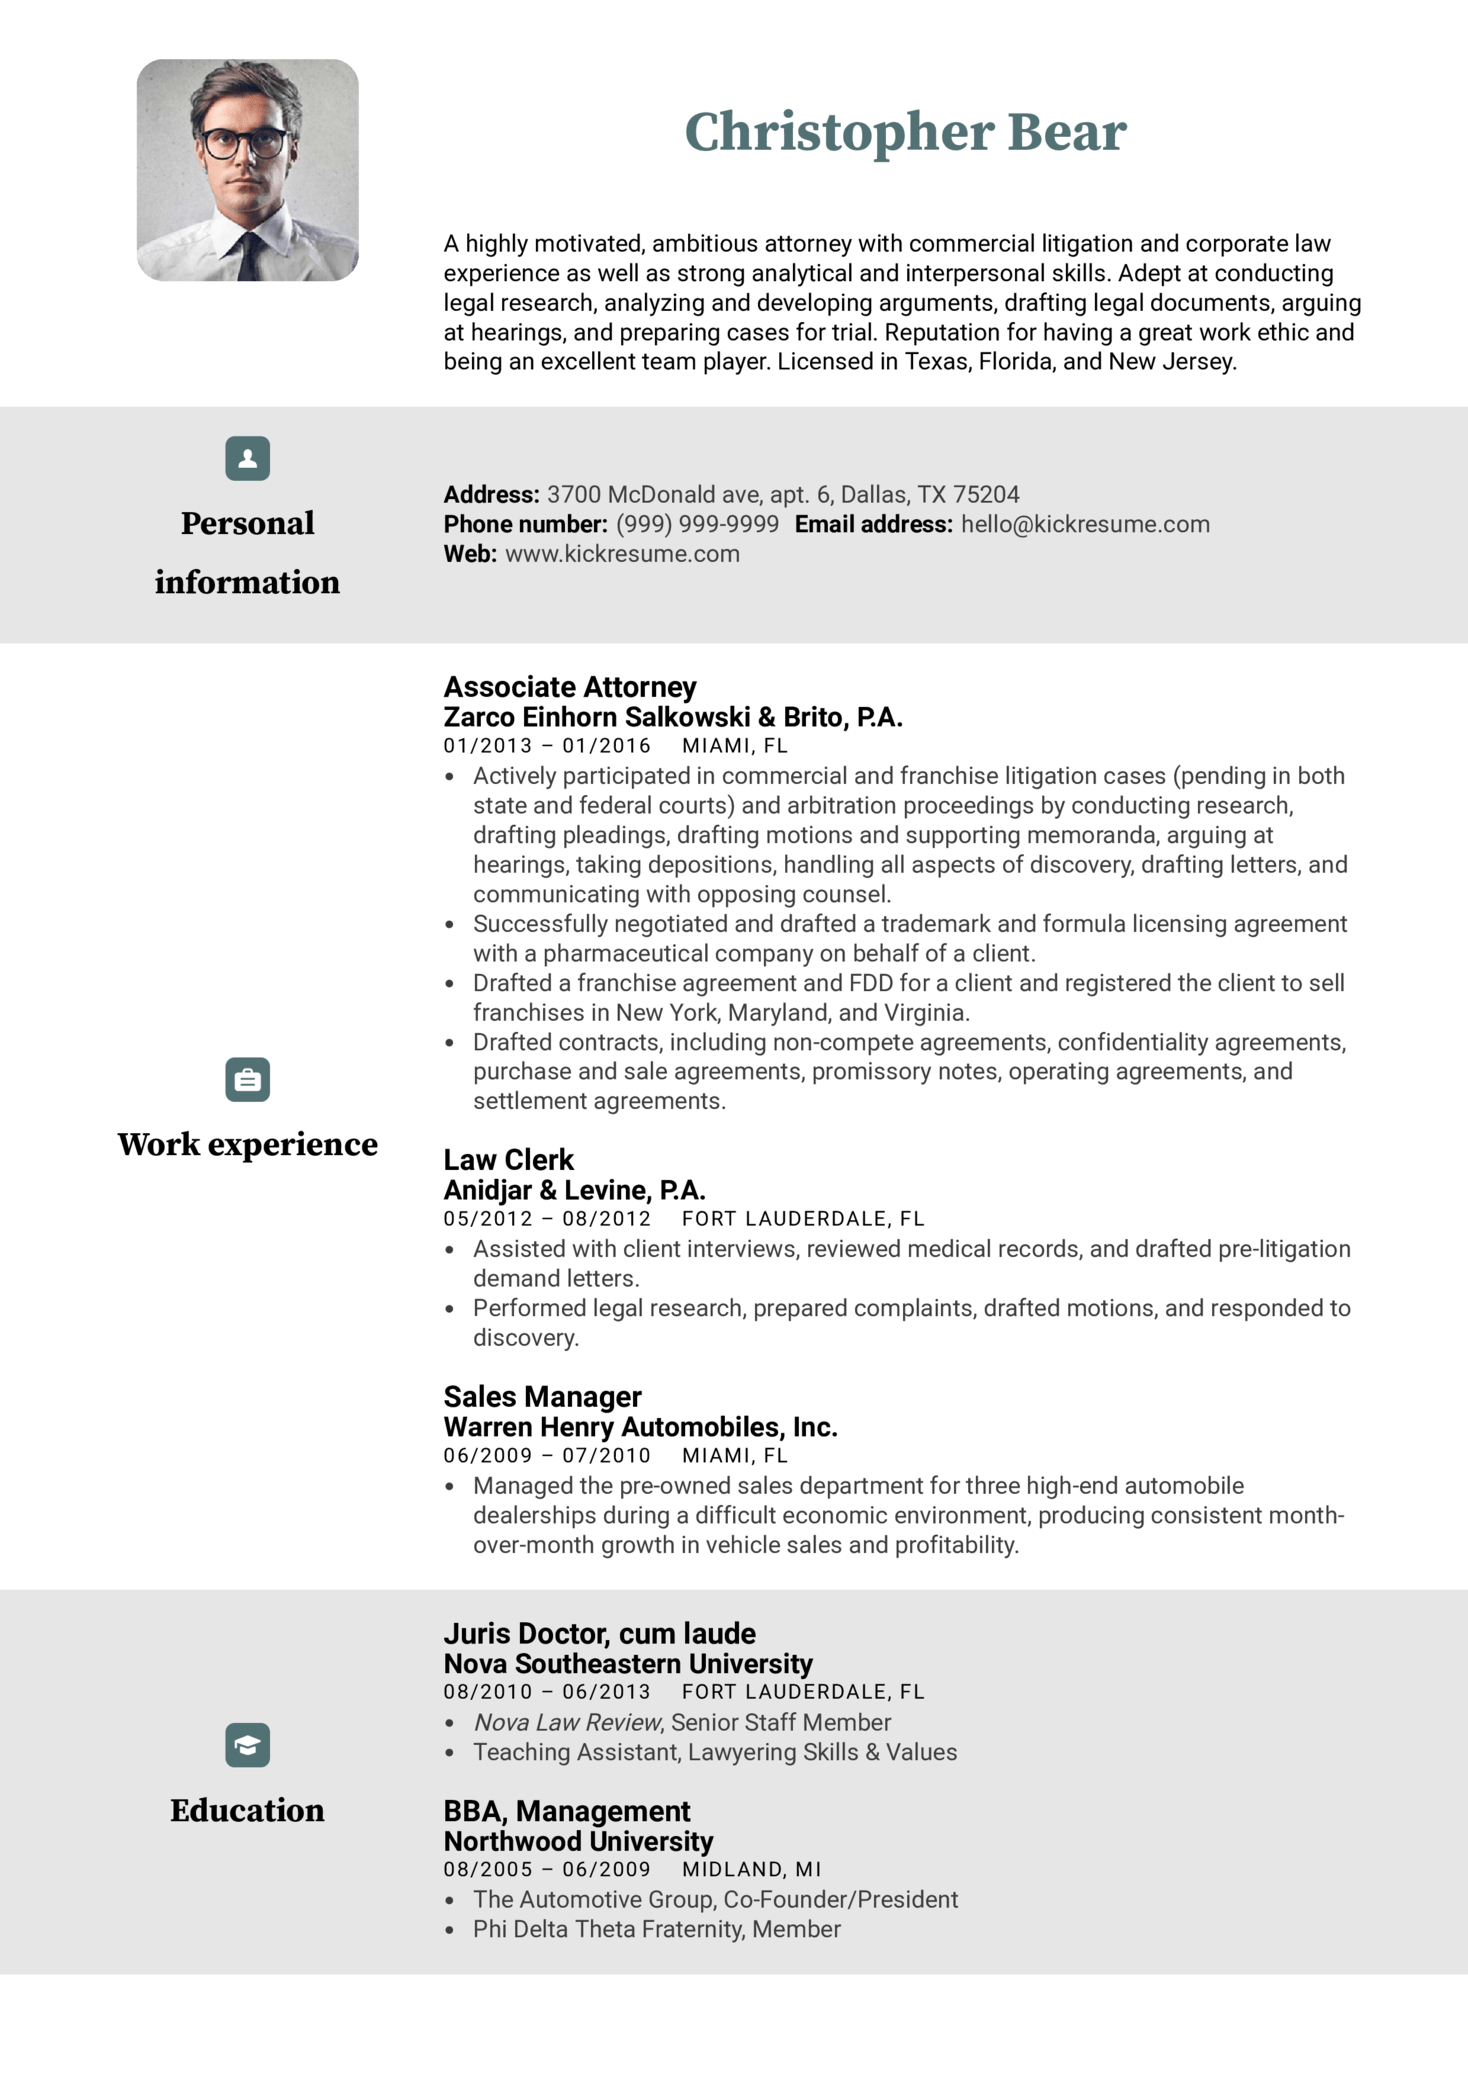 Resume Overview Examples Pdf Student Resume Law Internship Resume Sample  Career Help Center Beowulf Resume Pdf with Dental Assistant Resume Templates Law Clerk Resume Example Resume Builder Free Template